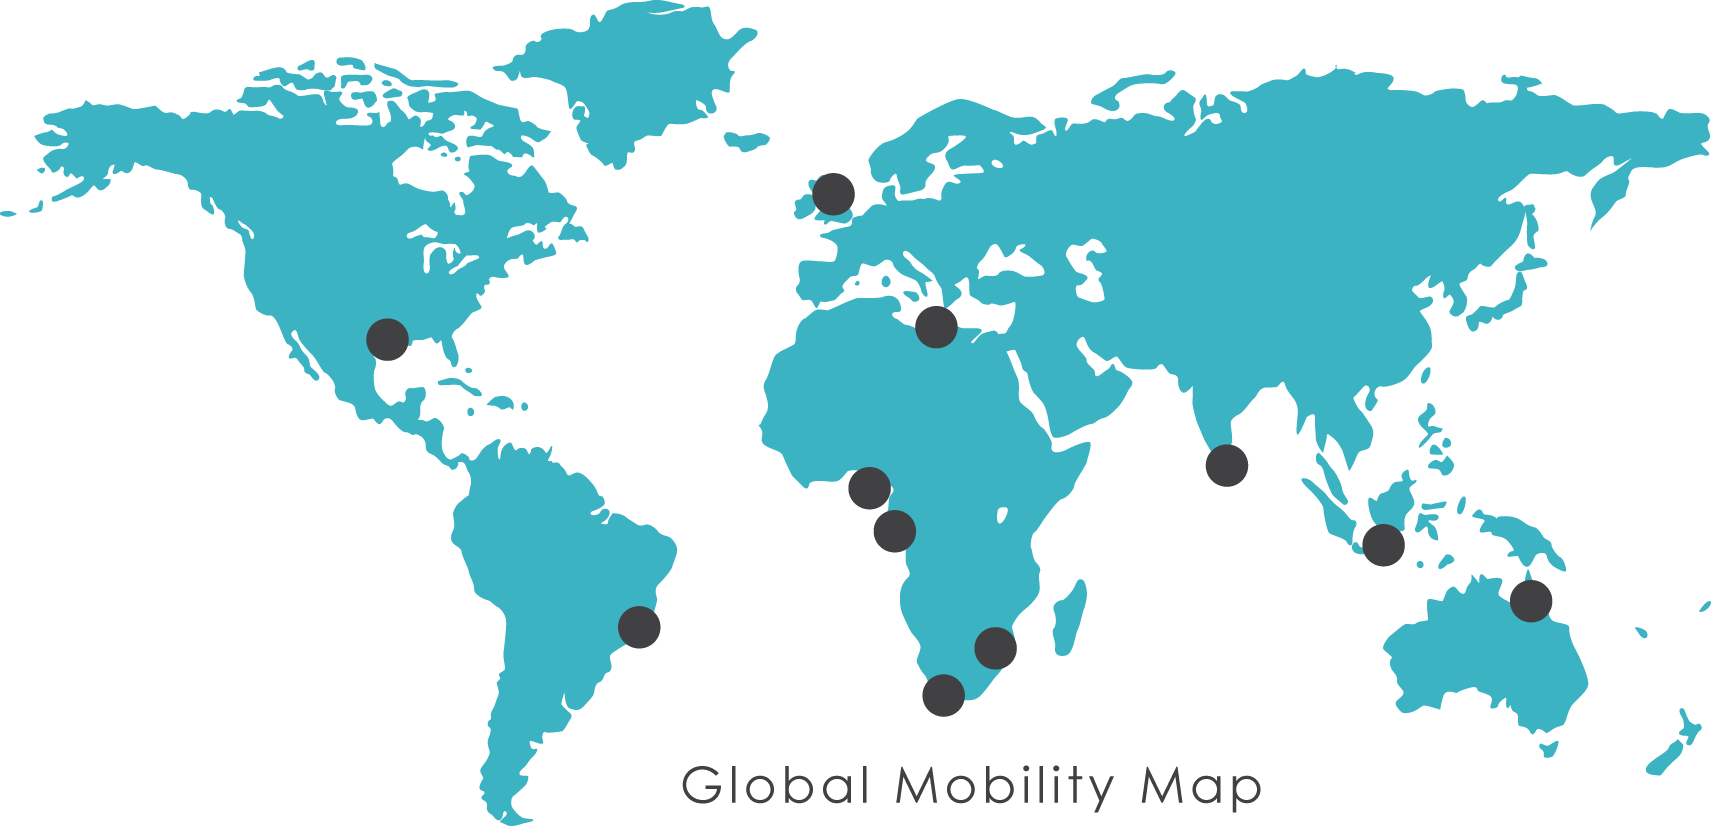 Global mobility map